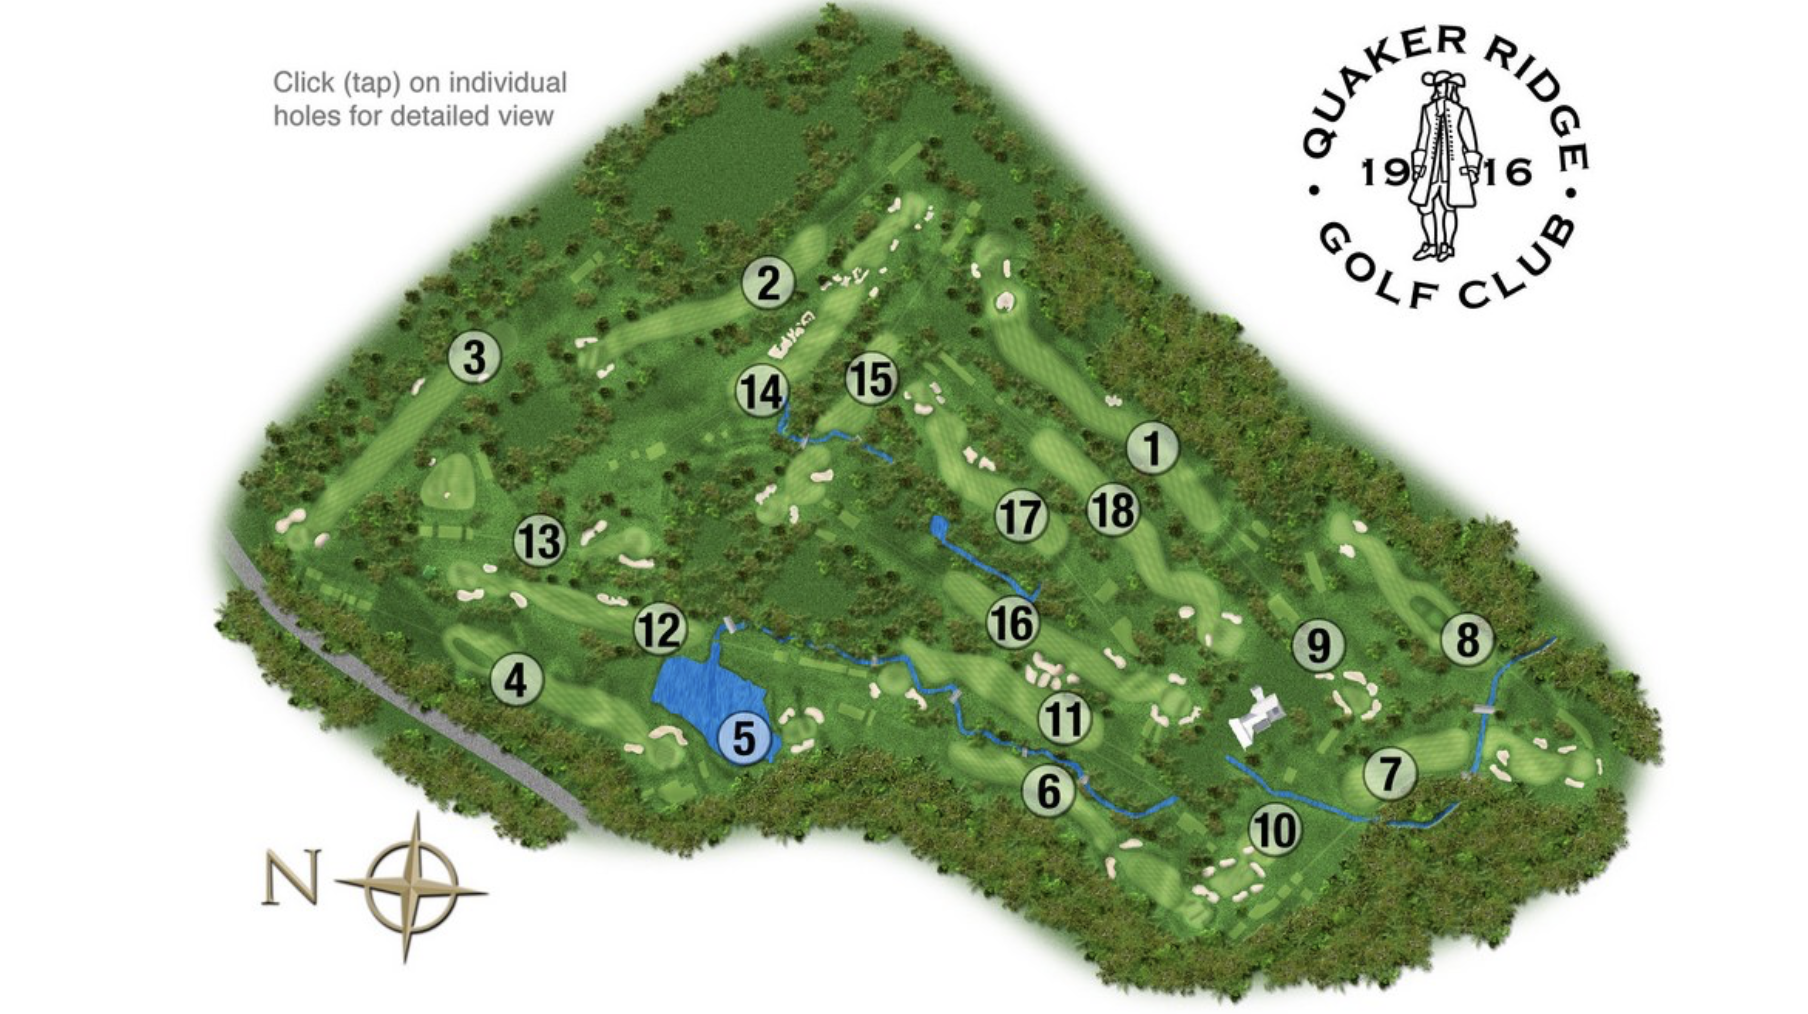 The course layout.